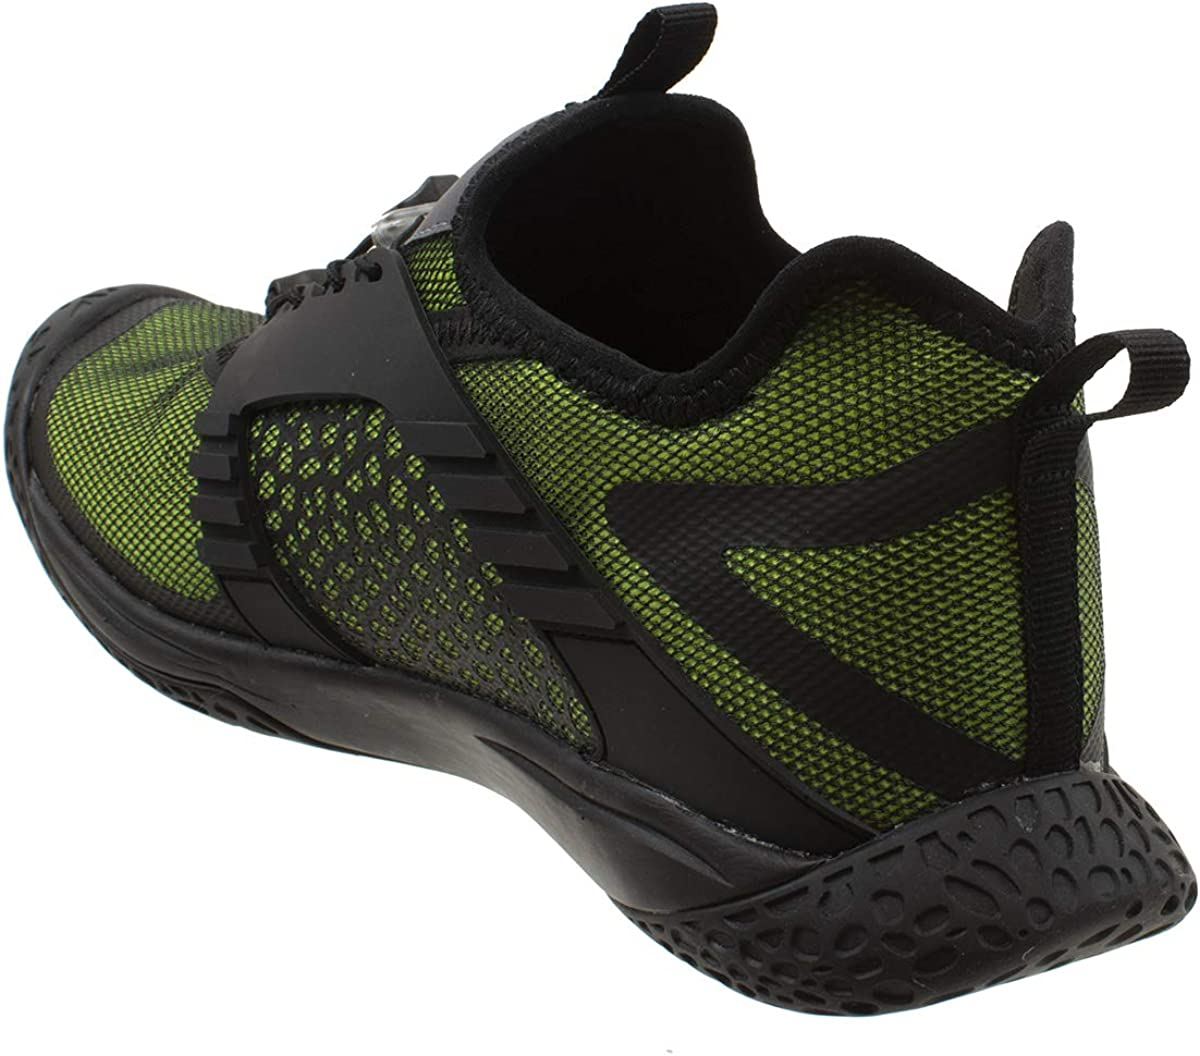 Jogger Lightweight Mesh Breathable Walking RUGGED SHARK Mens Water Shoe Athletic with Active Drainage Quick Dry WAVECREST